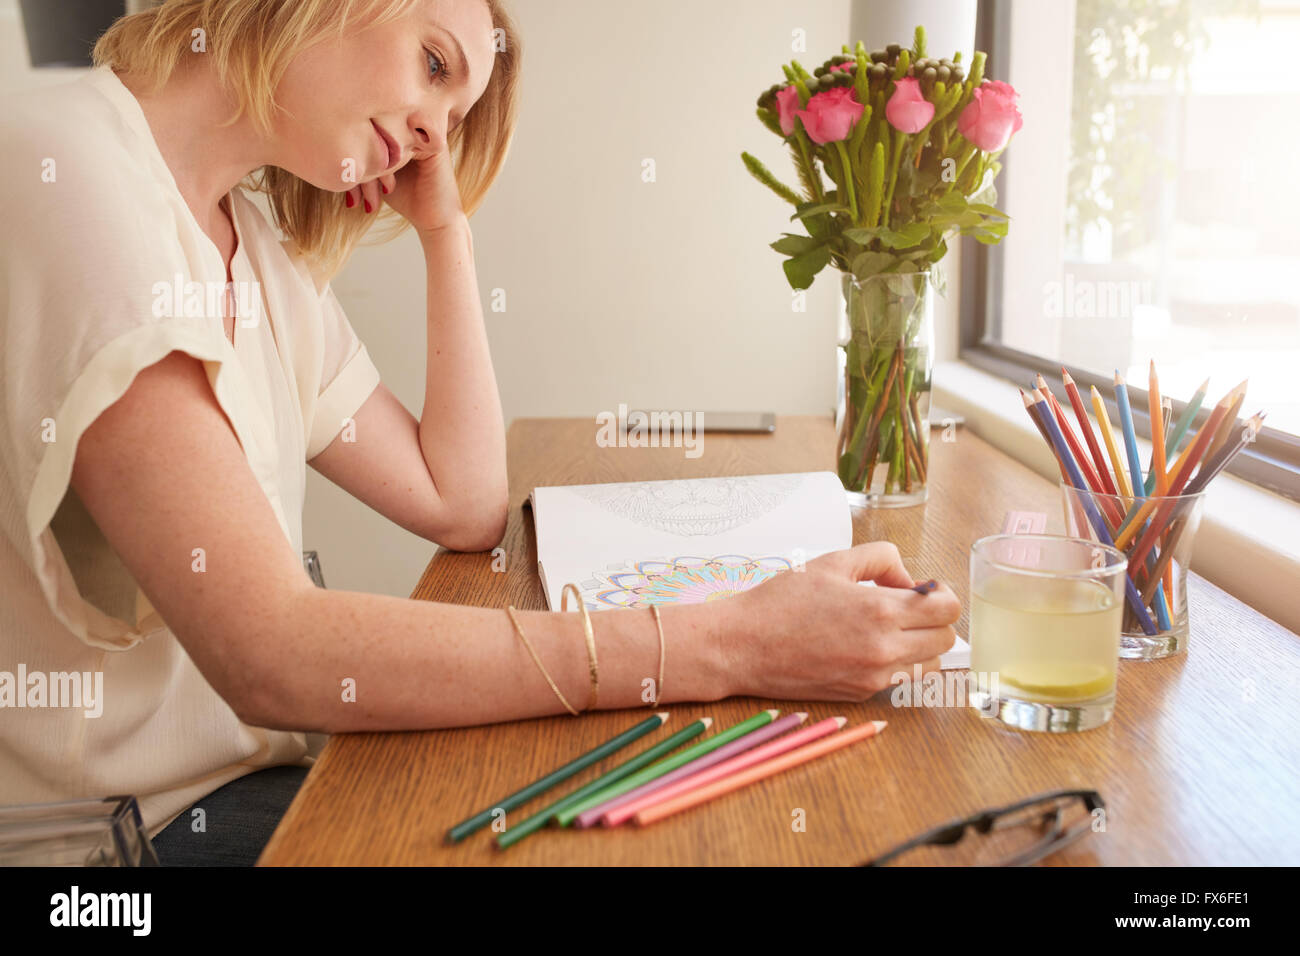 Woman drawing an adult coloring book while comfortably sitting at table by a window. - Stock Image